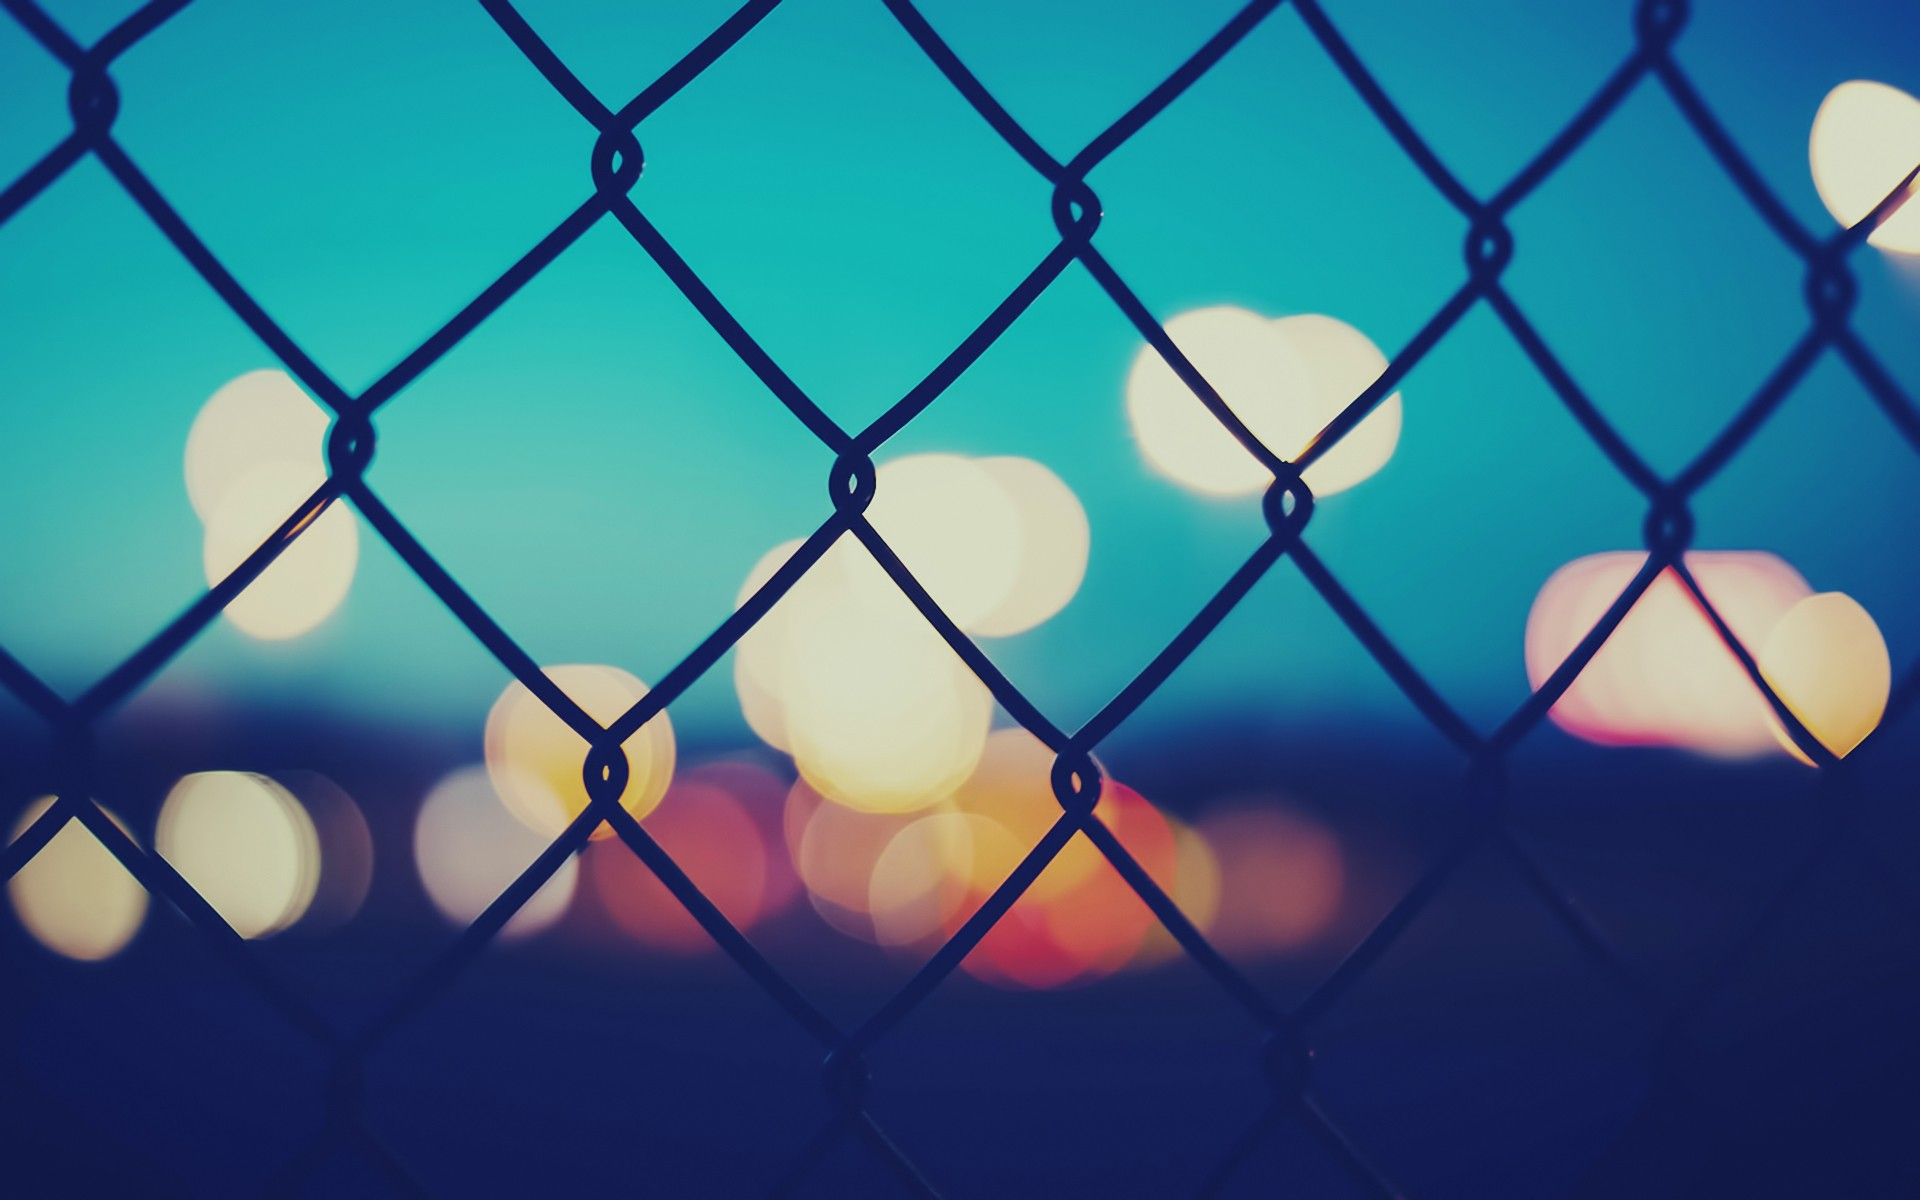 Chain Link Fence Wallpaper: Fences Bokeh Chain Link Fence Wallpaper